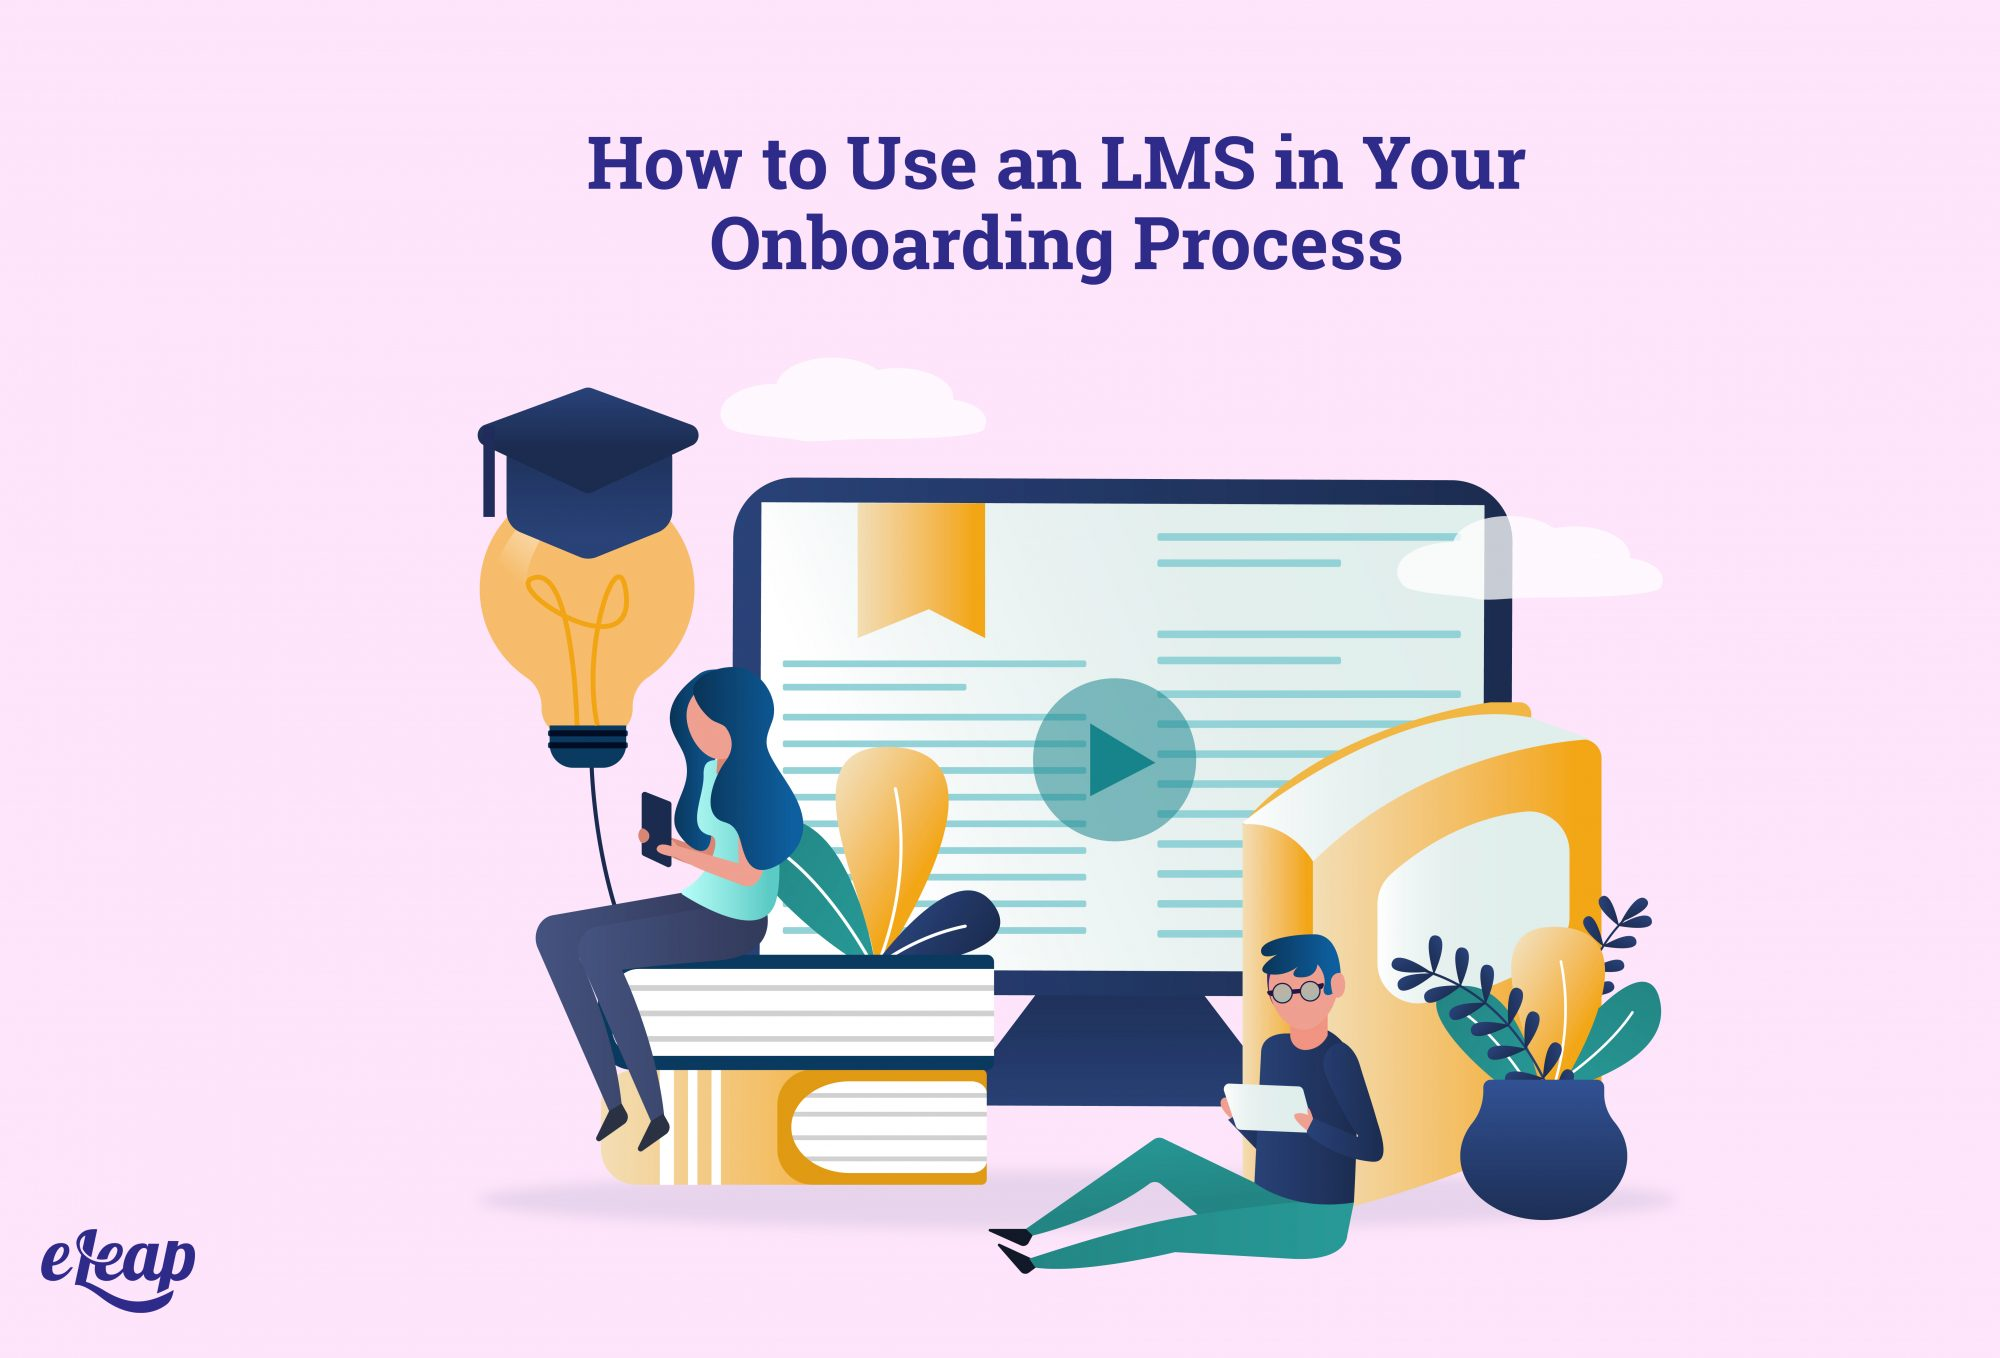 How to Use an LMS in Your Onboarding Process